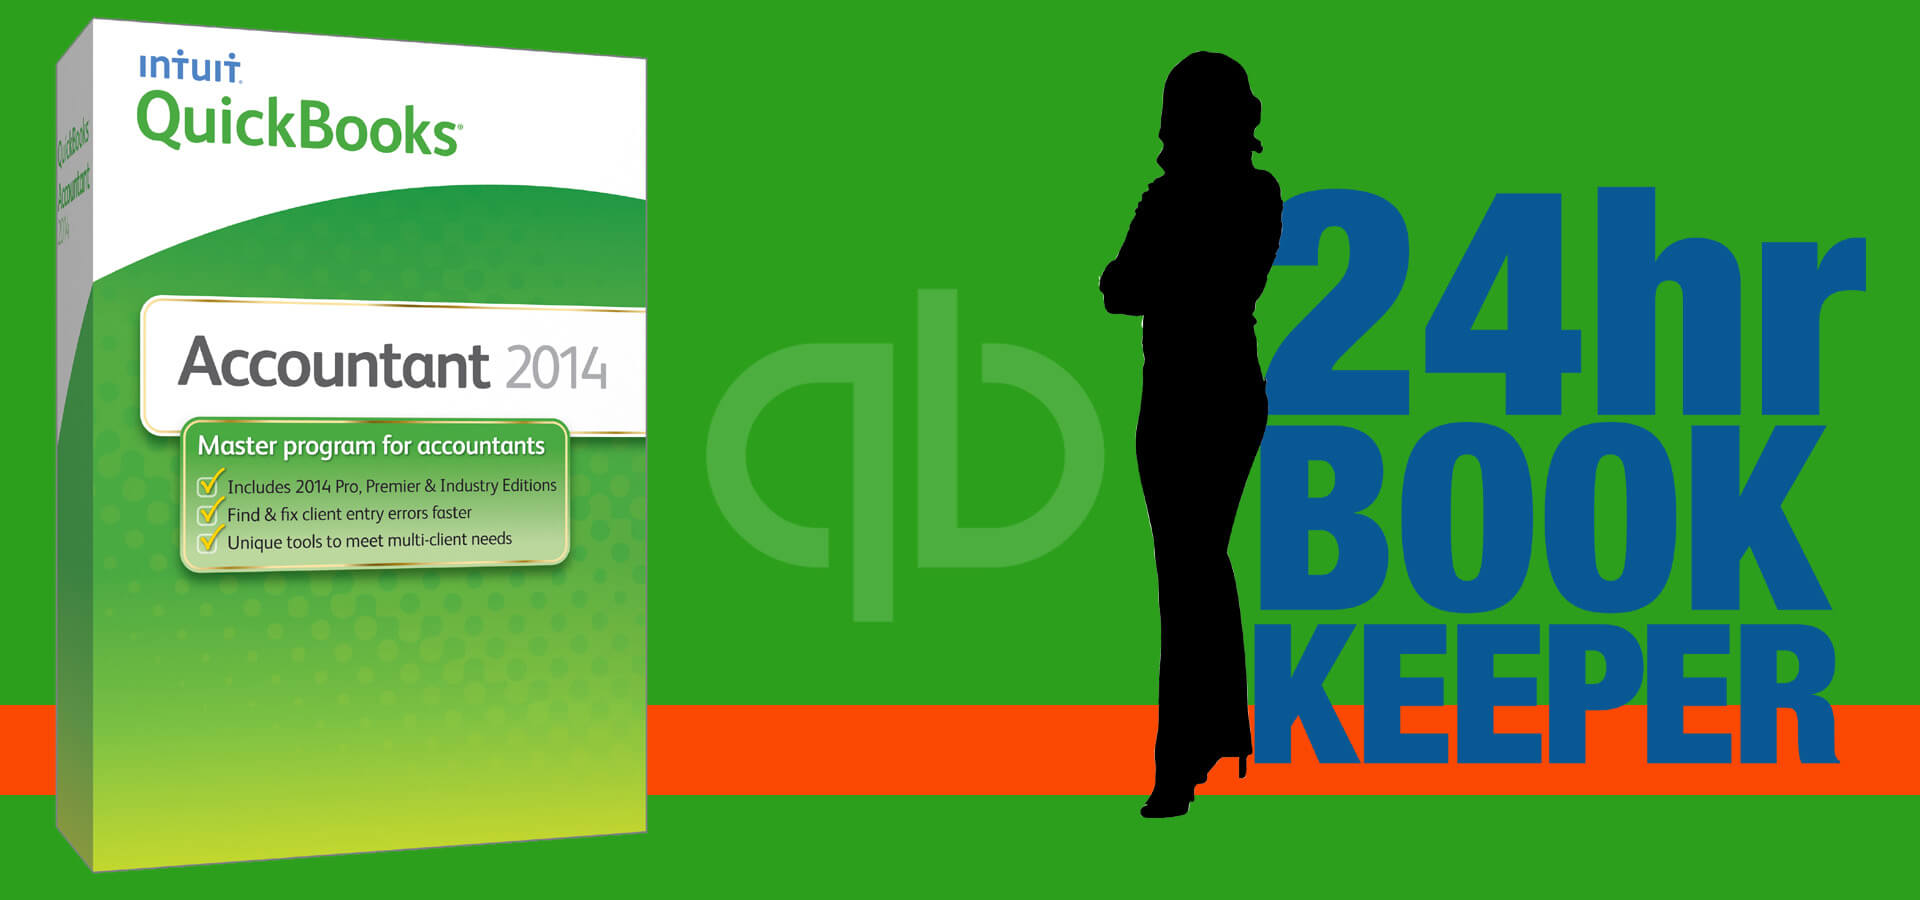 10 Reasons Why You Should Use QuickBooks